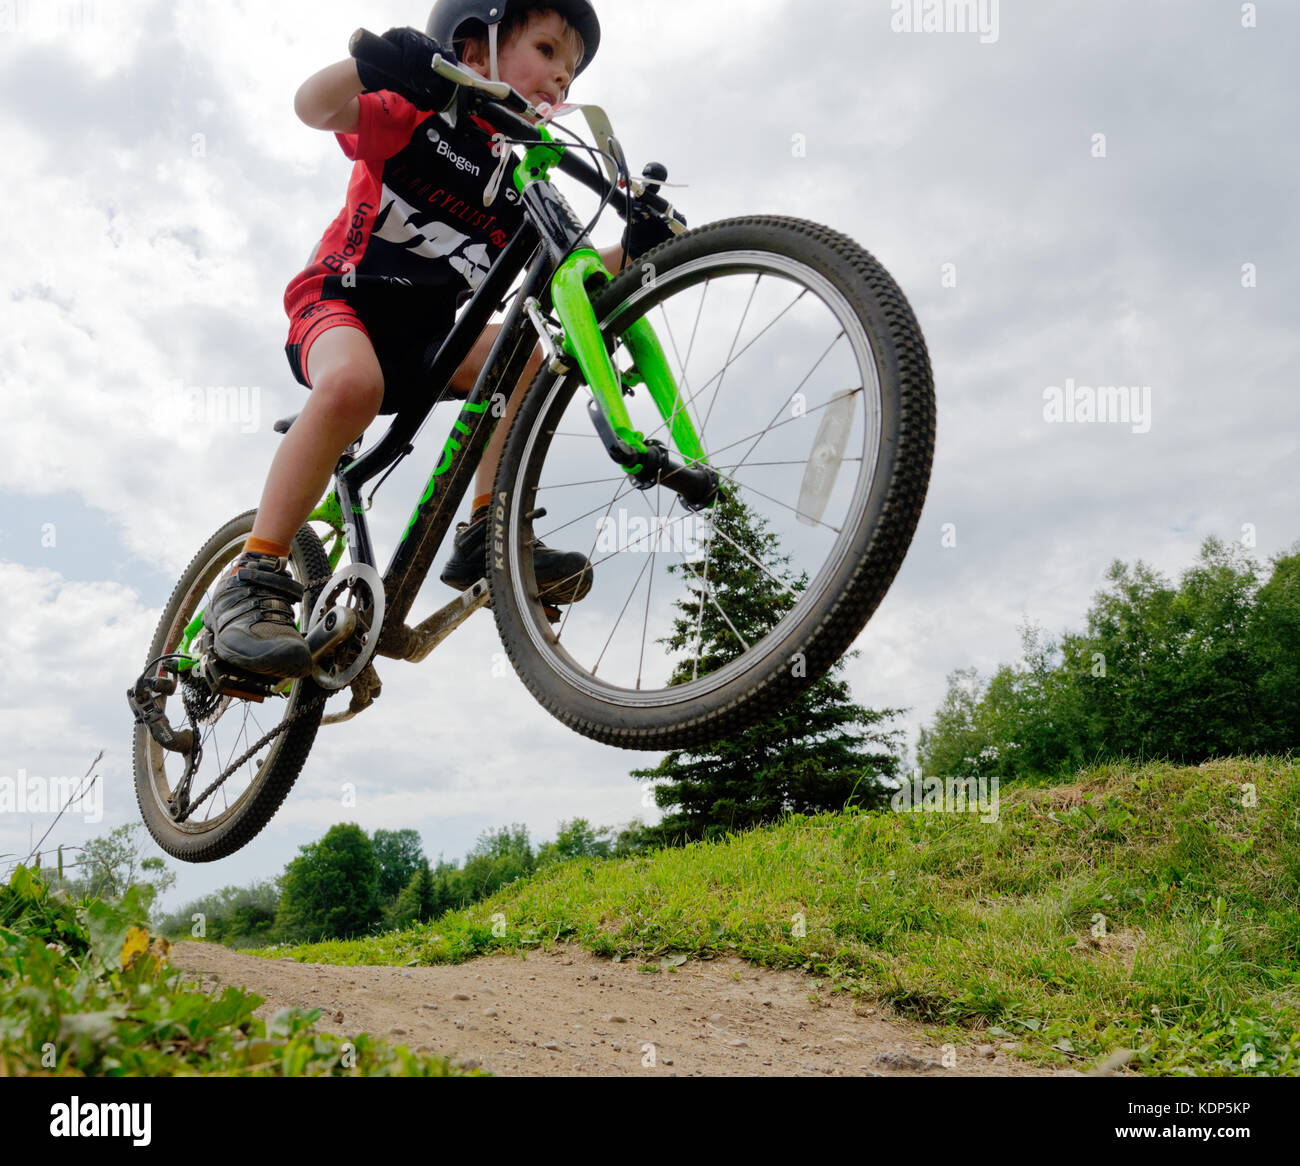 a-young-boy-5-yrs-old-jumping-in-a-mountain-bike-KDP5KP.jpg